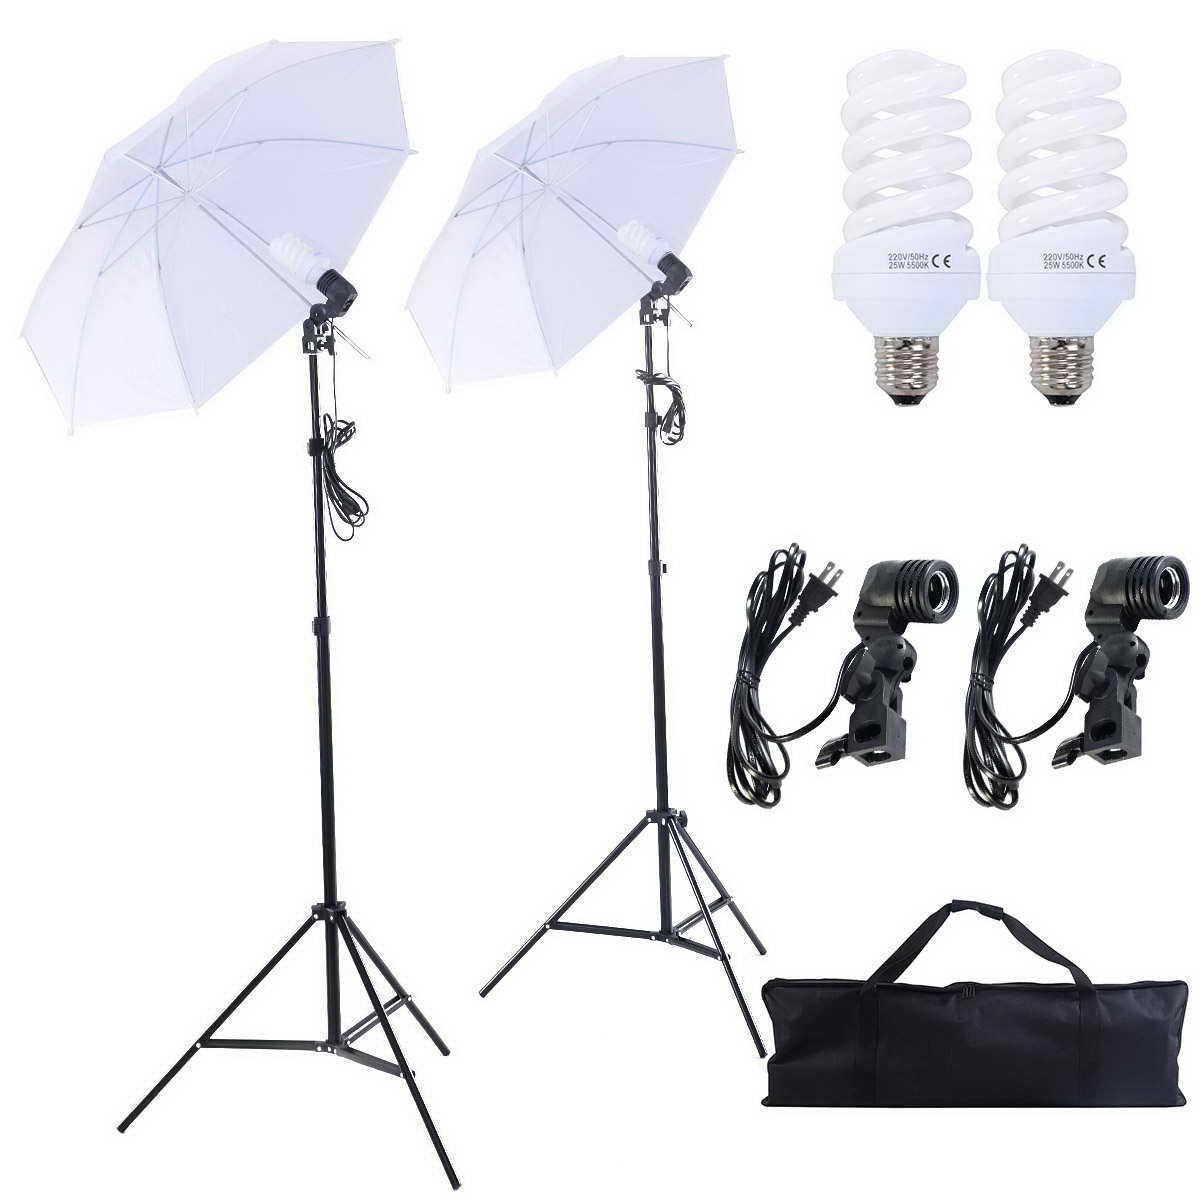 Amazon.com : Safstar Photography and Video Day Light Umbrella ... for Umbrella Photography Lights  29dqh